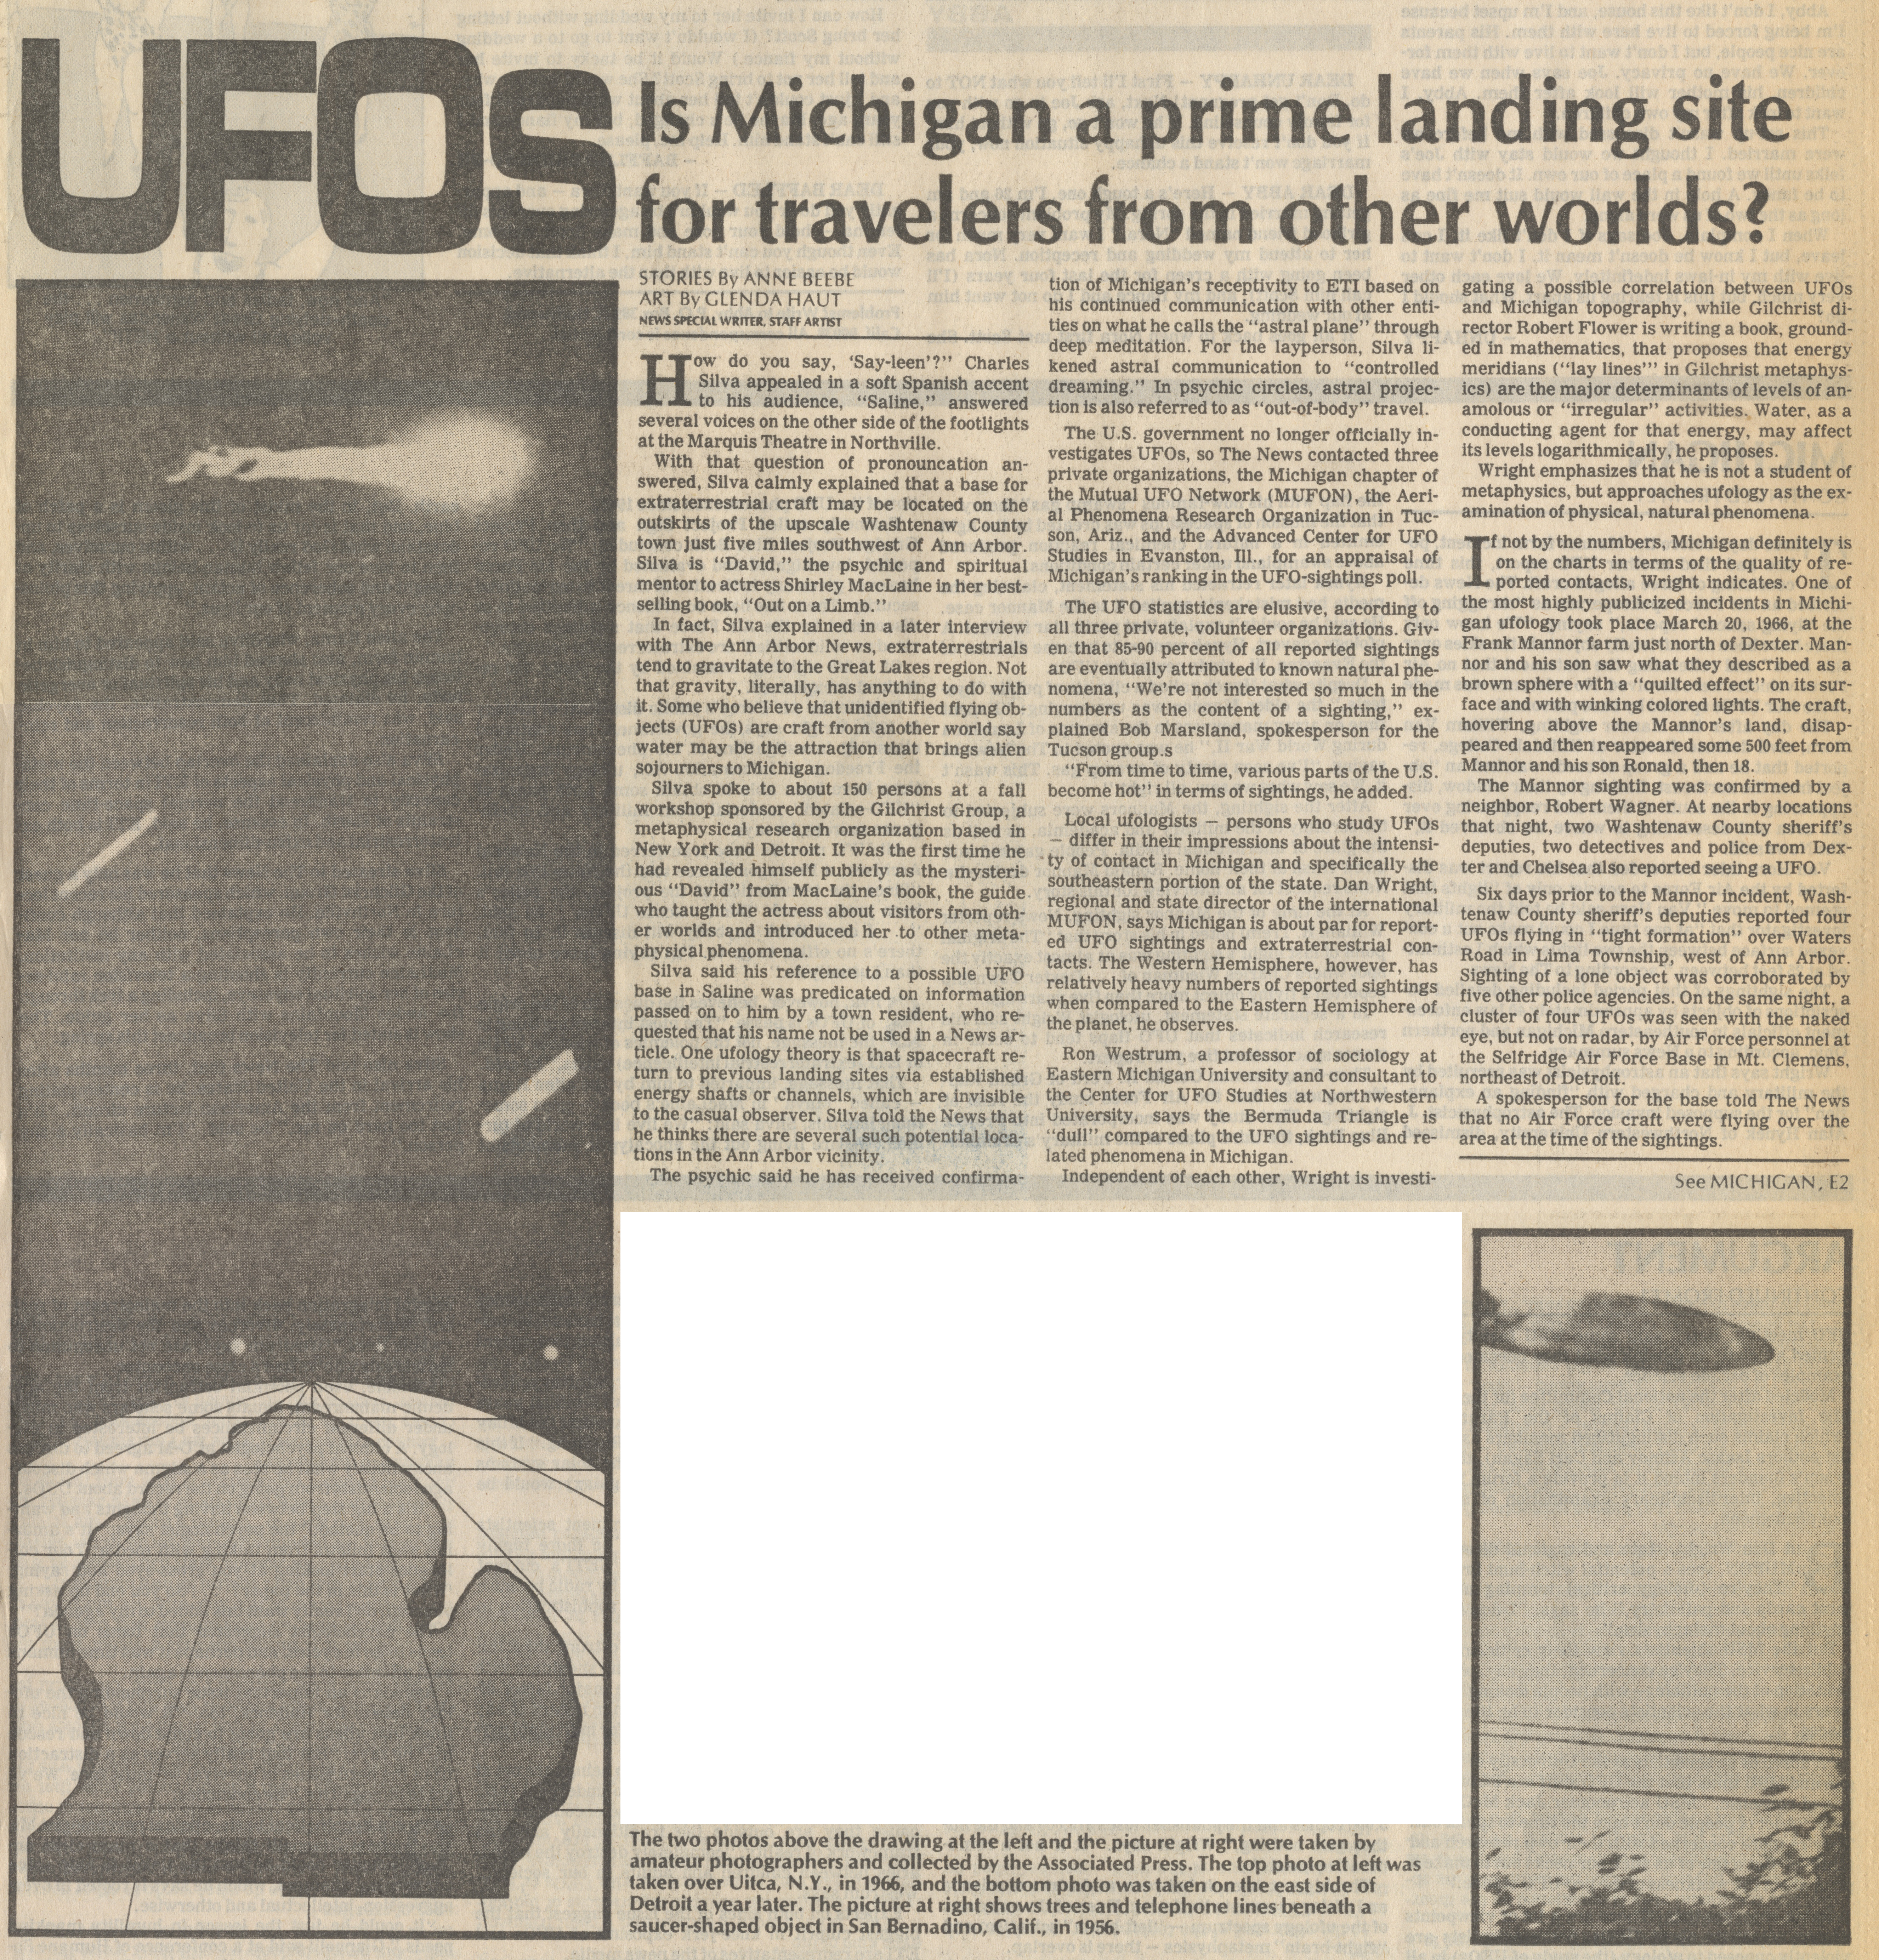 UFOs: Is Michigan a Prime Landing Site for Travelers From Other Worlds? image